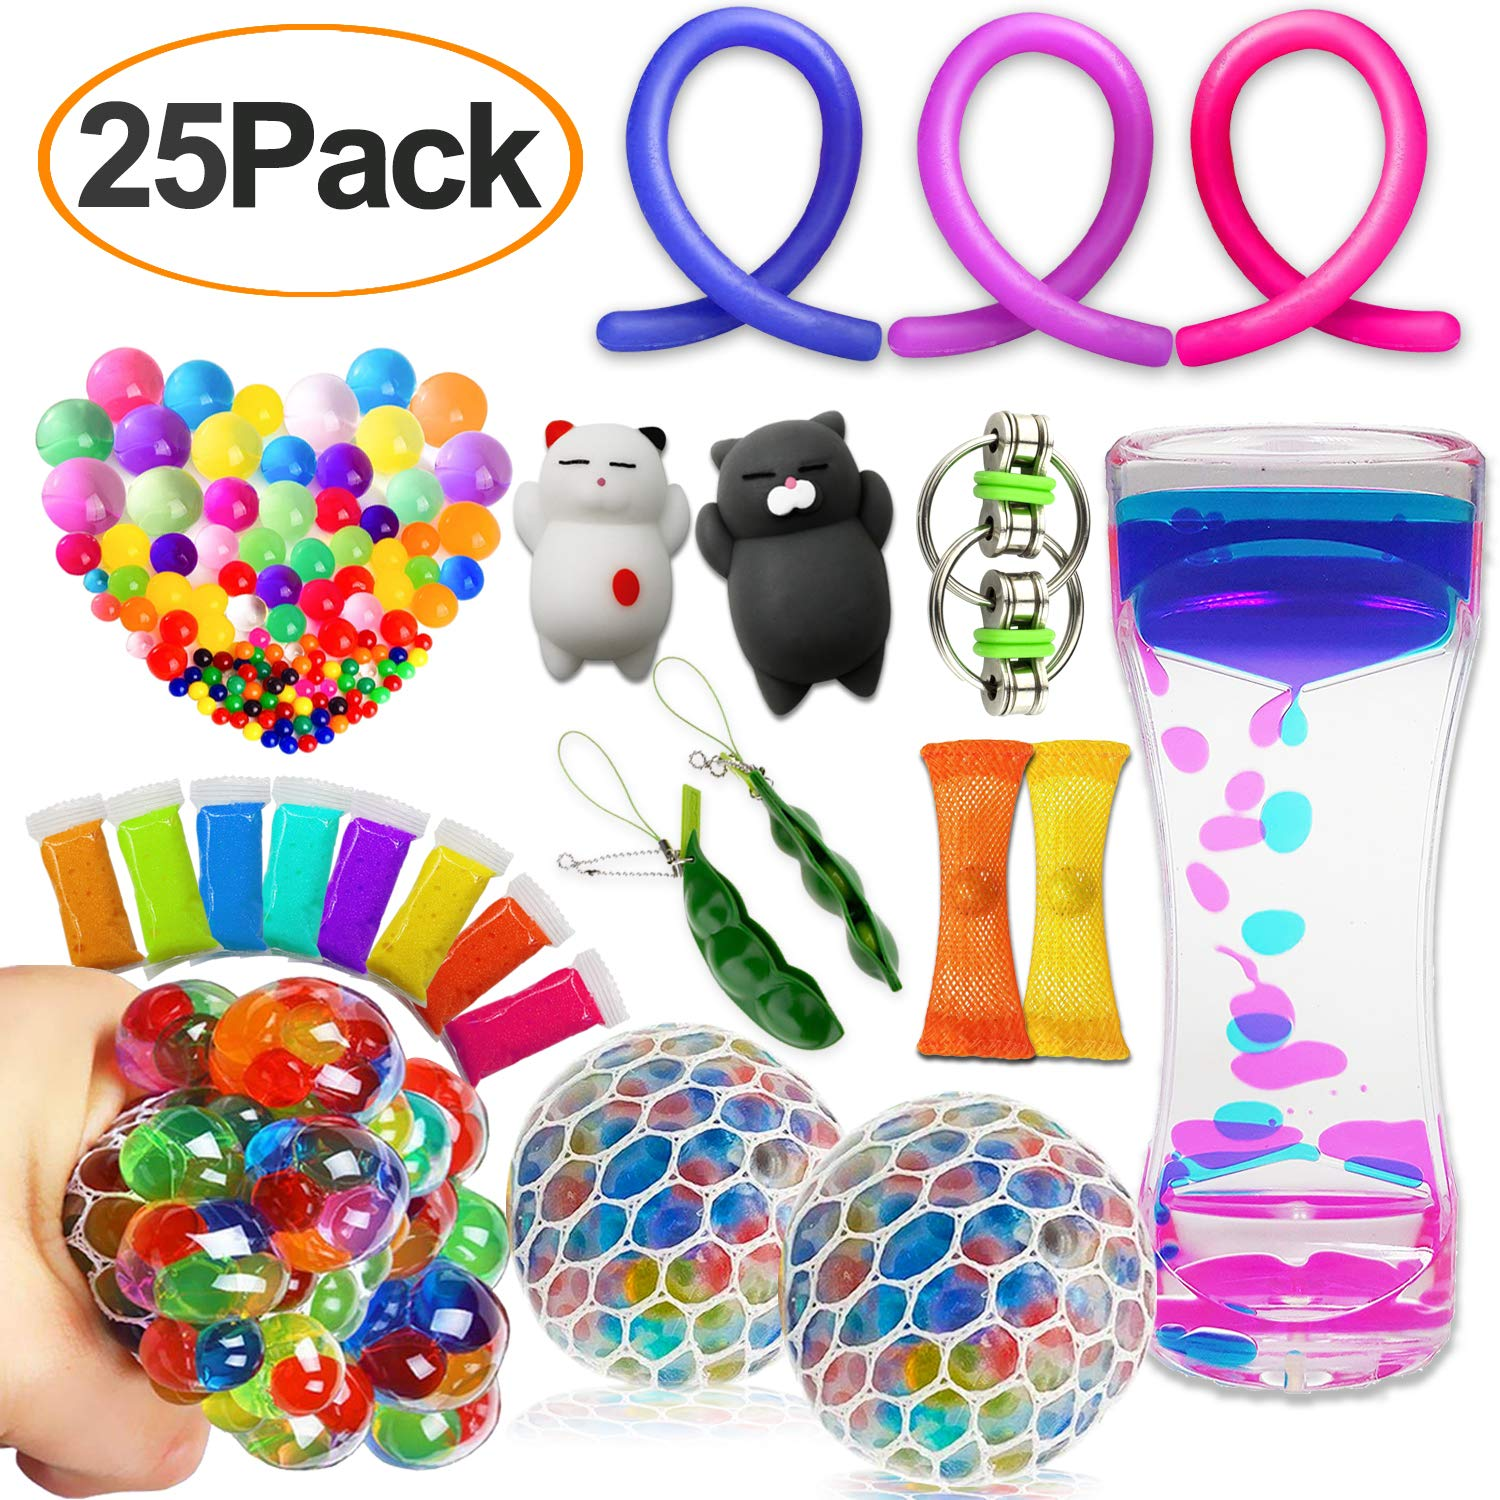 25 Pack Sensory Fidget Toys Set for Kids Adults, Stretchy String/Liquid Motion/Squeeze Grape balls/Snow Mud/Water Beads/Mesh Marble/Squeeze bean/Mochi Bubbler/Flippy Chain Gift for ADHD Autism Anxiety